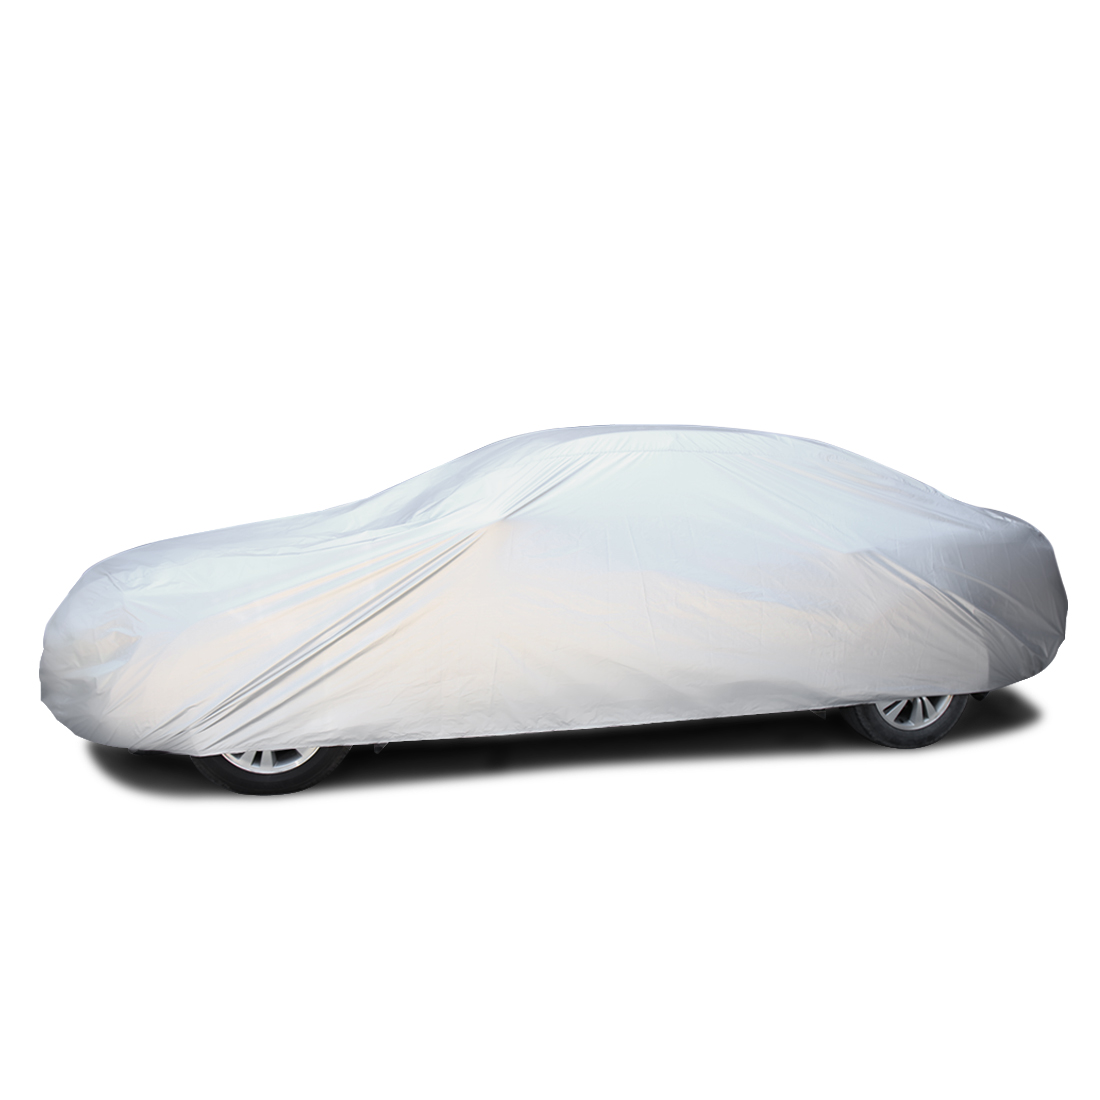 S 190T Silver Tone Pickup Auto Car Cover Ice Frost Resistant Breathable Scratch Waterproof Dustproof UV Heat Block - image 4 of 5